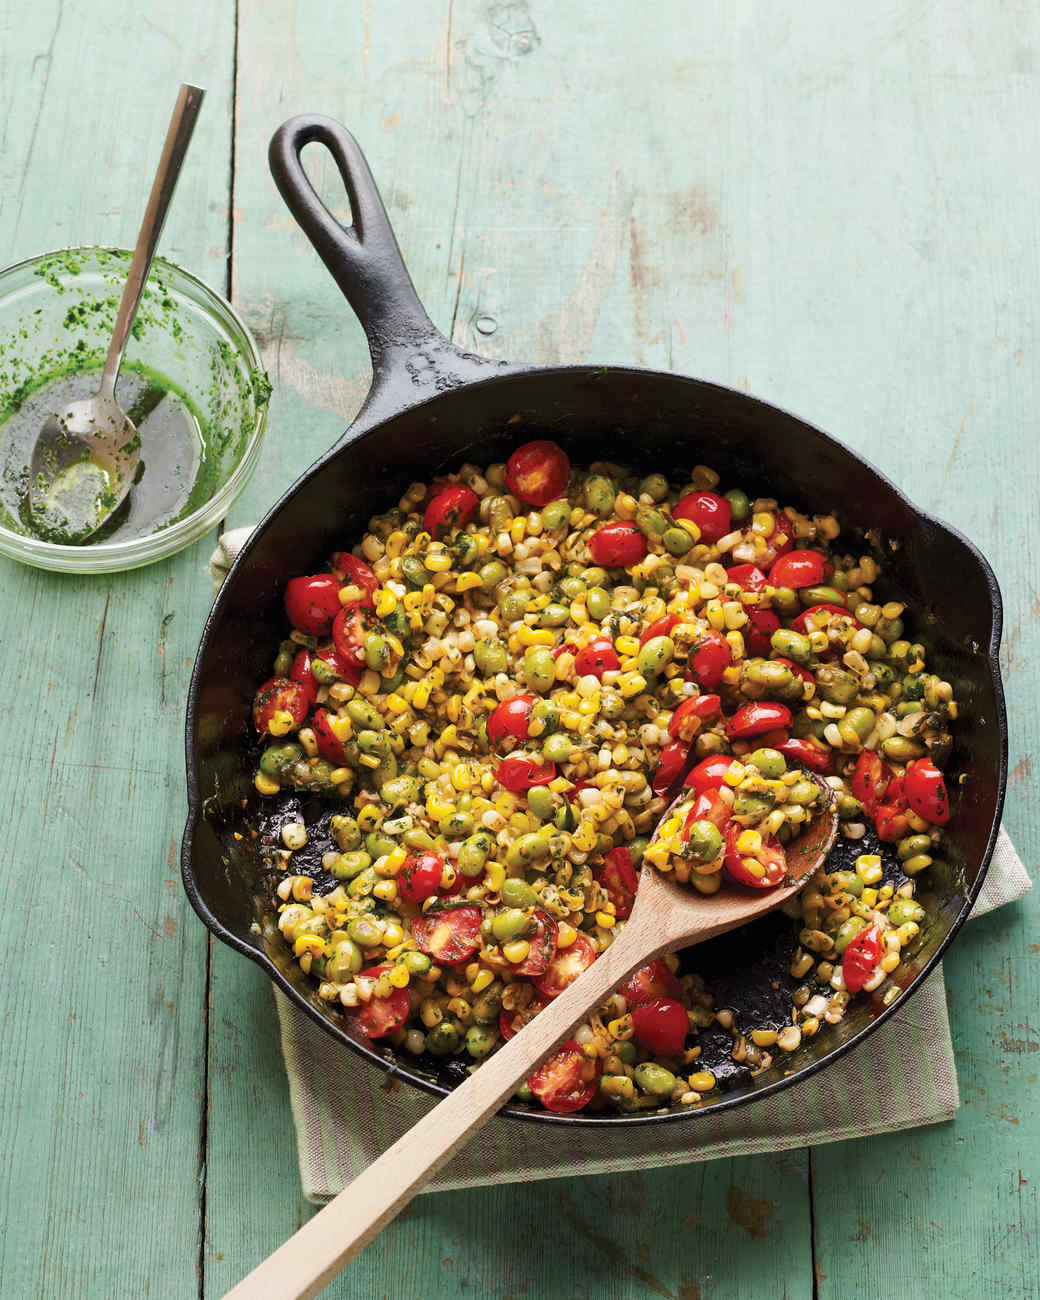 Skillet Corn, Edamame, and Tomatoes with Basil Oil